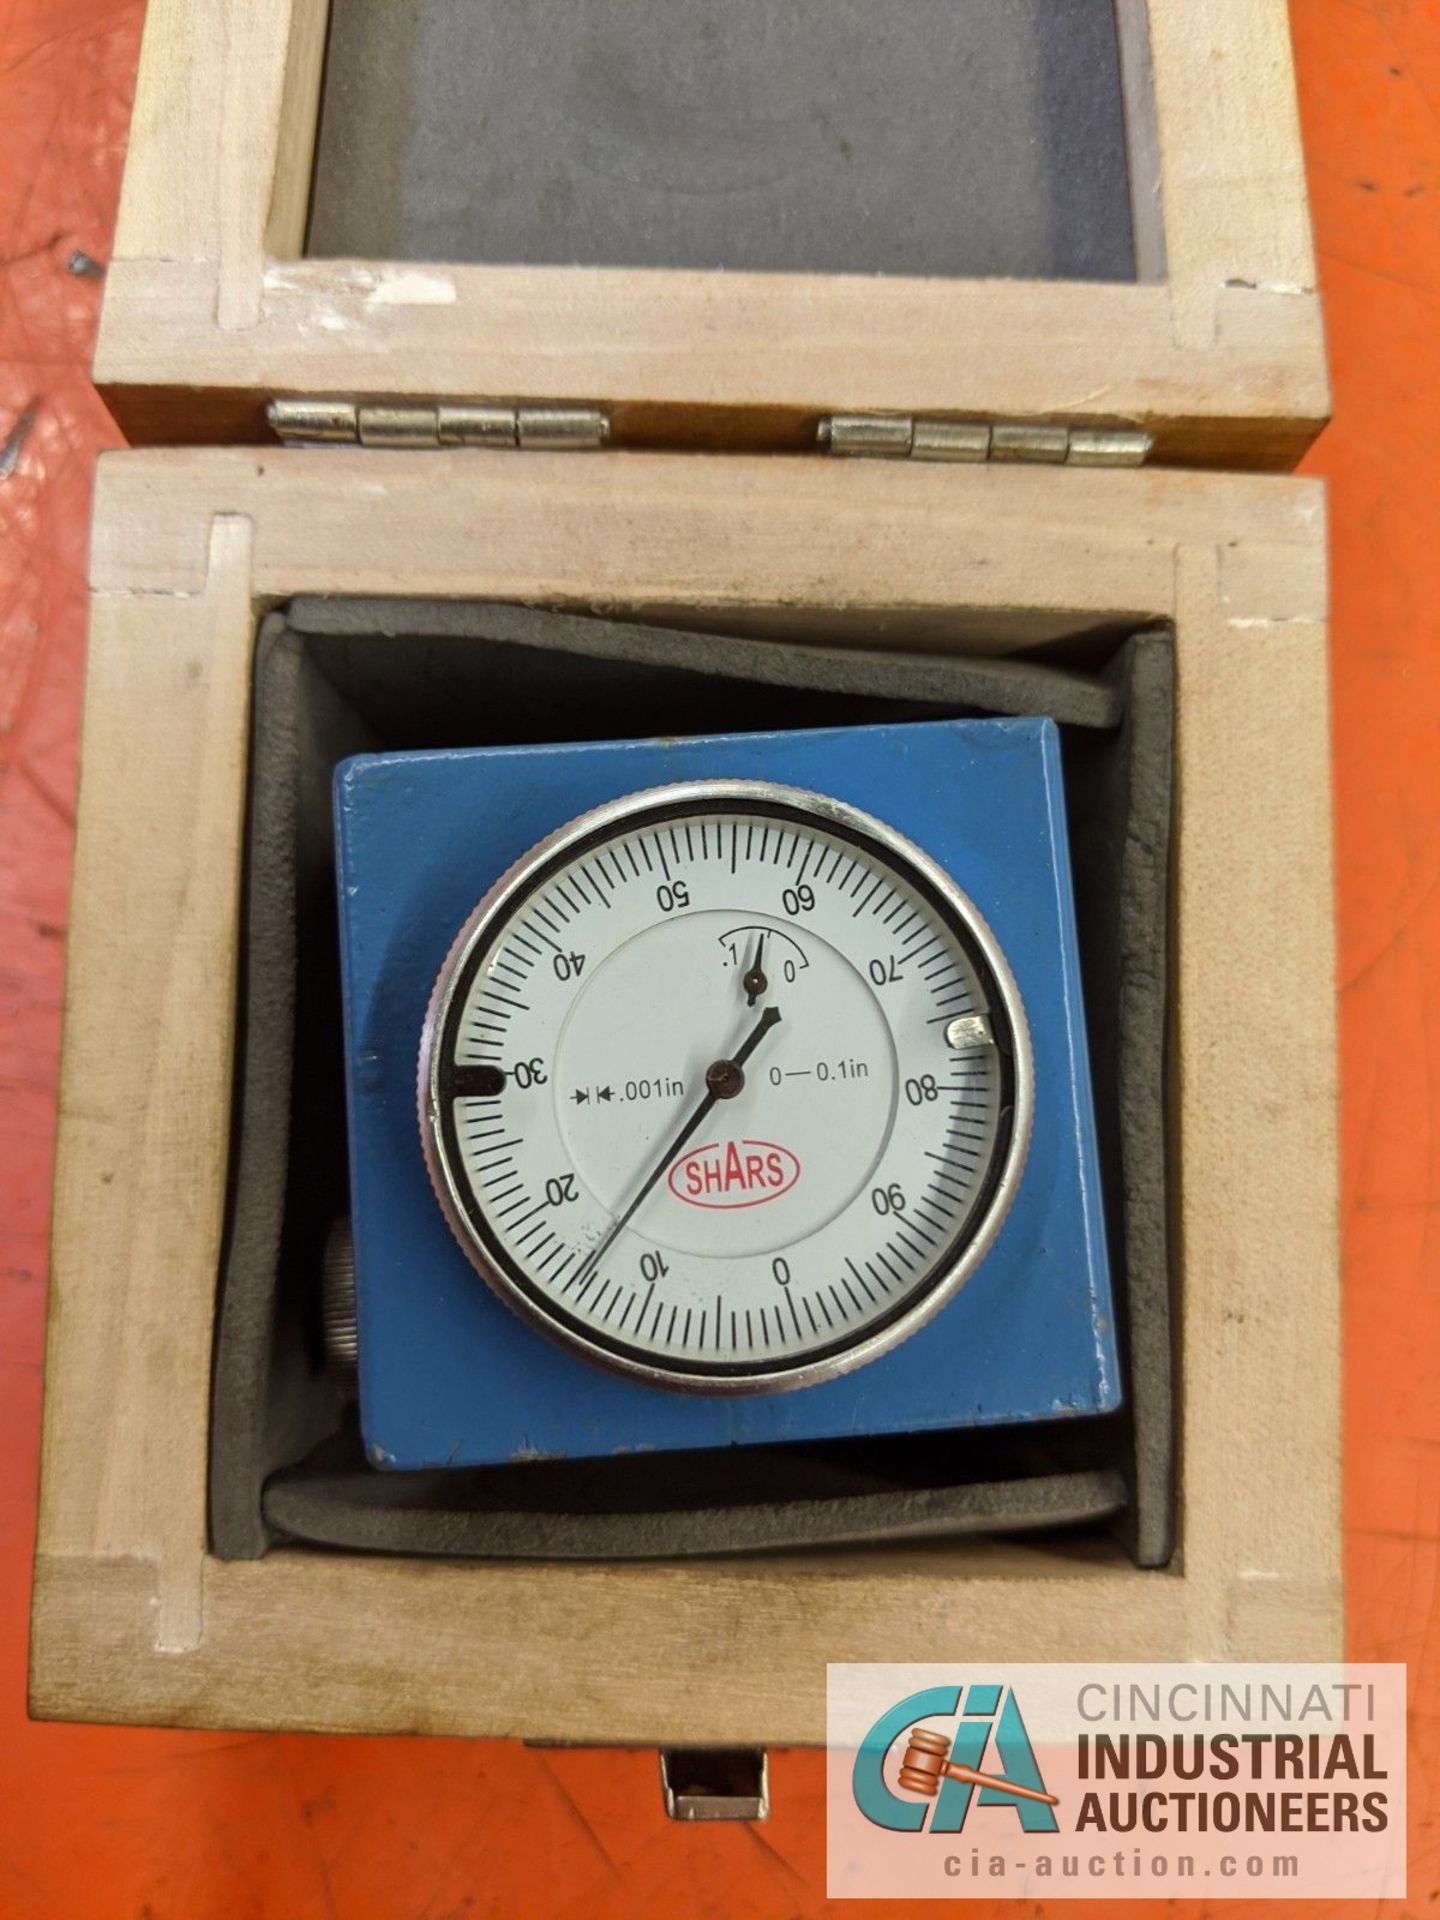 (LOT) INSPECTION; T-HANDLE MICROMETERS, PARALLEL SET AND Z-AXIAL PRESET GAUGE - Image 8 of 8